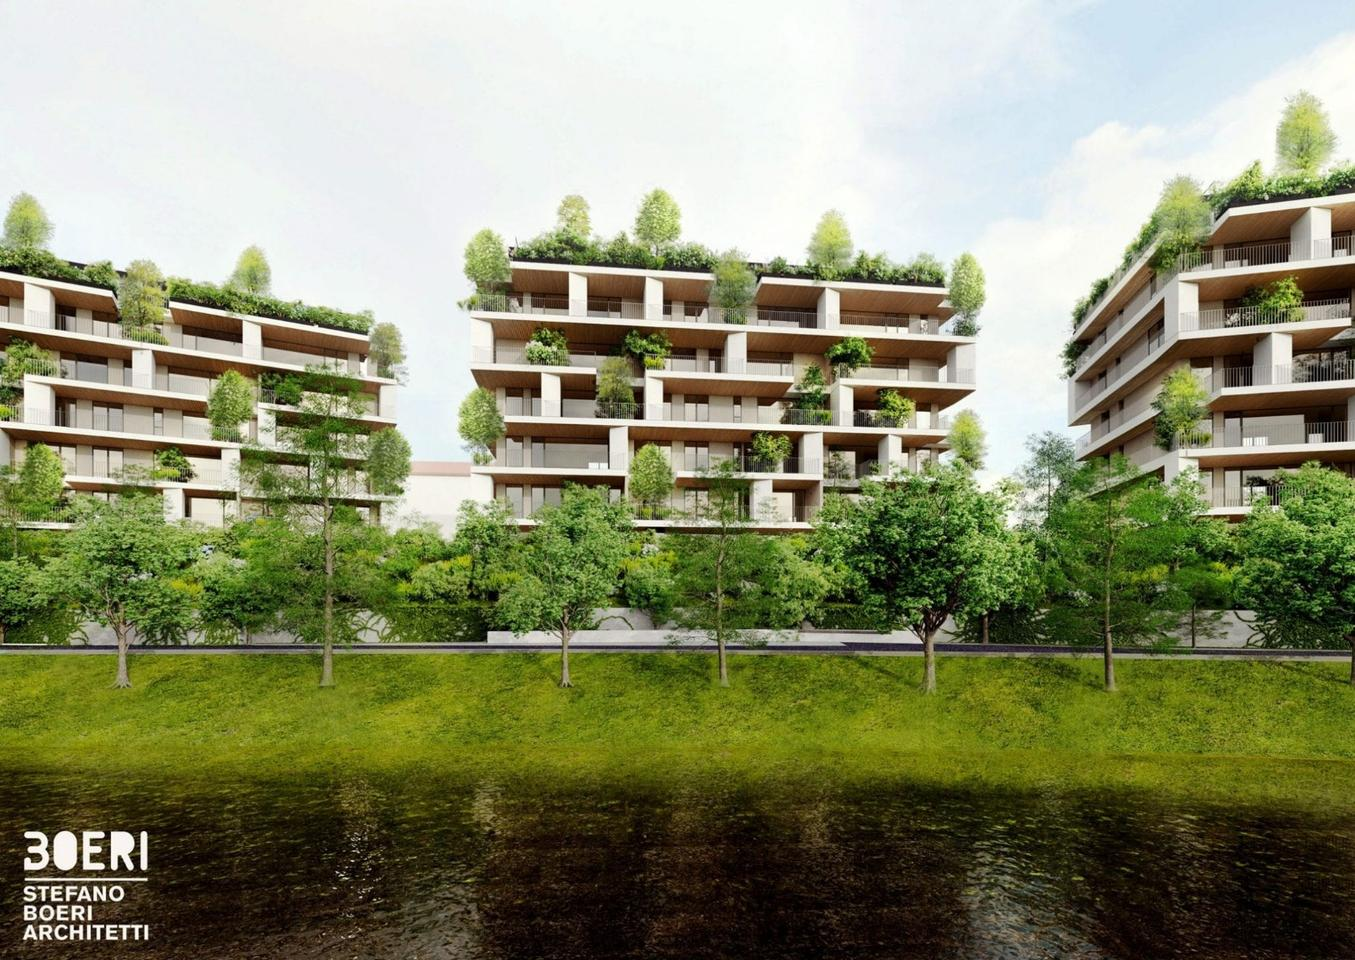 Taking the place of a defunct factory, theCà delle Alzaie project will include three buildings each standing seven stories tall